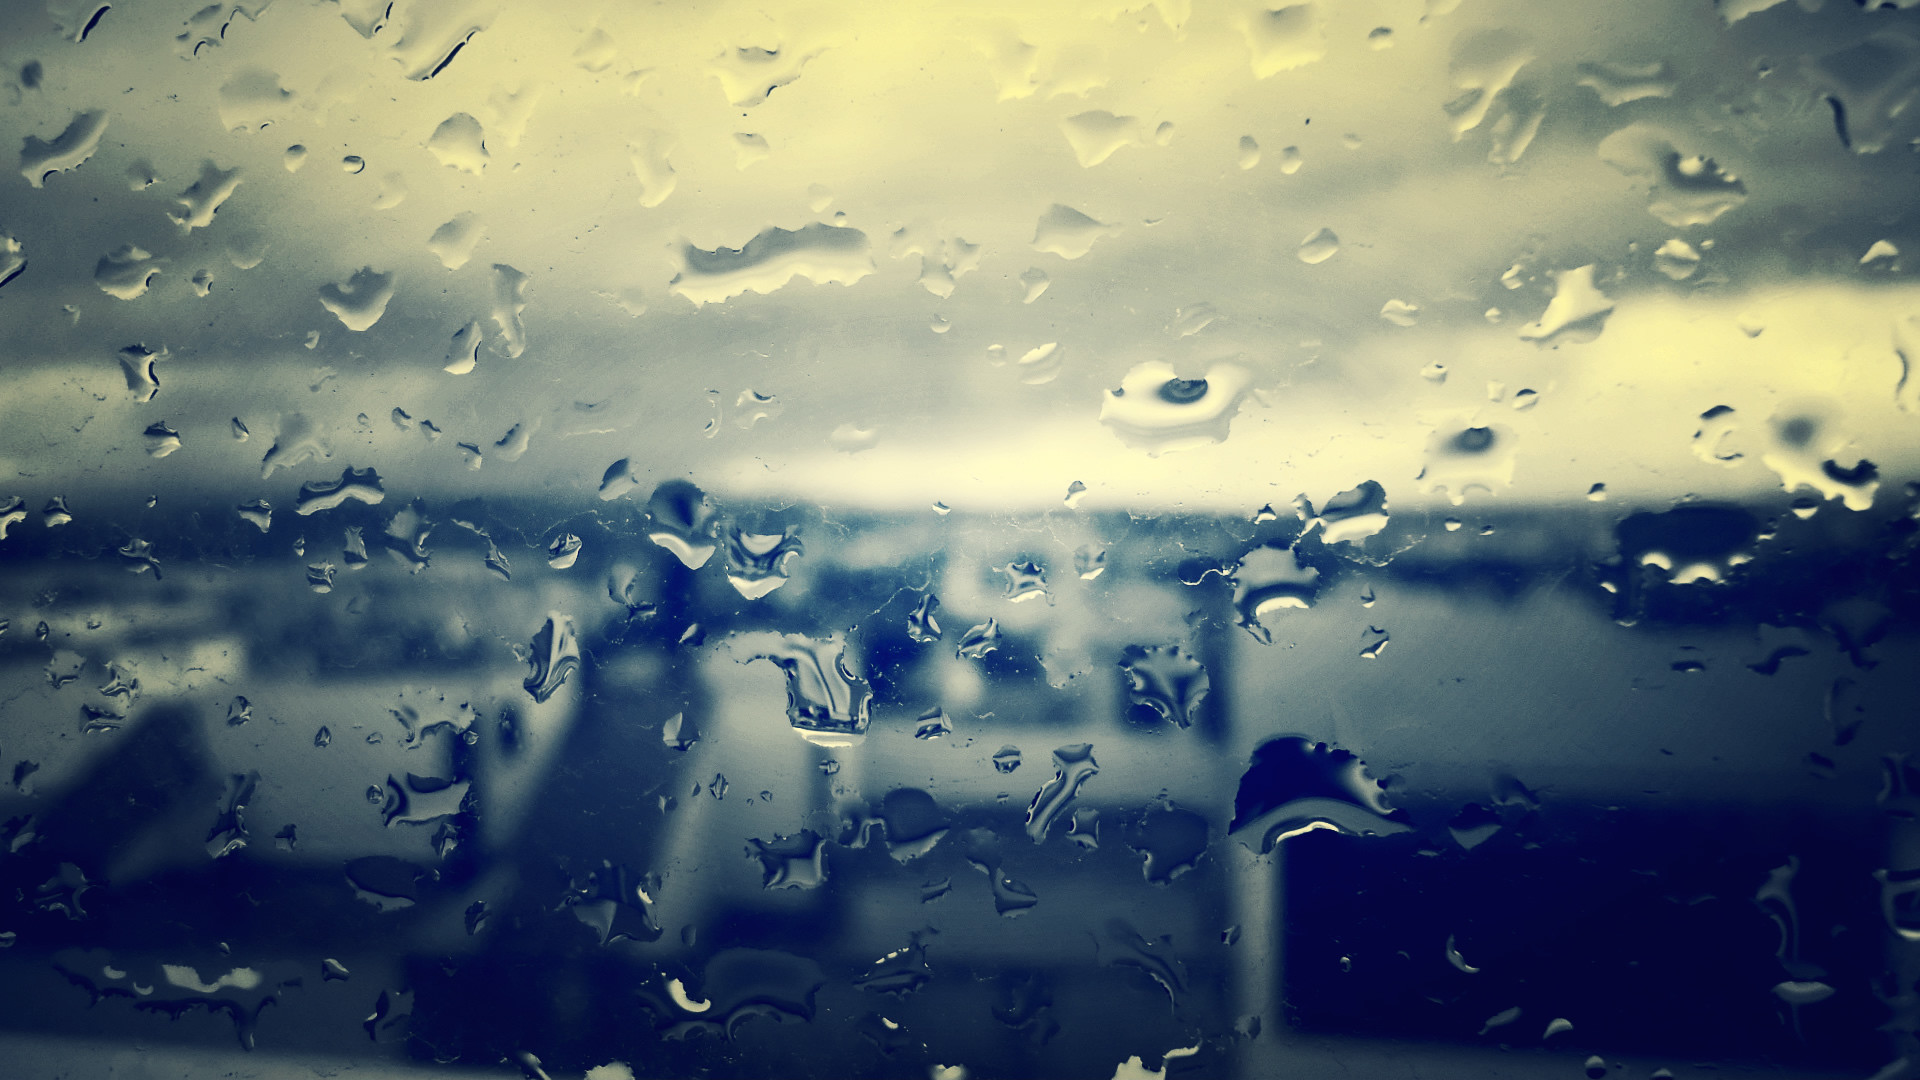 Rainy Day HD Wallpaper | Theme Bin – Customization, HD Wallpapers .